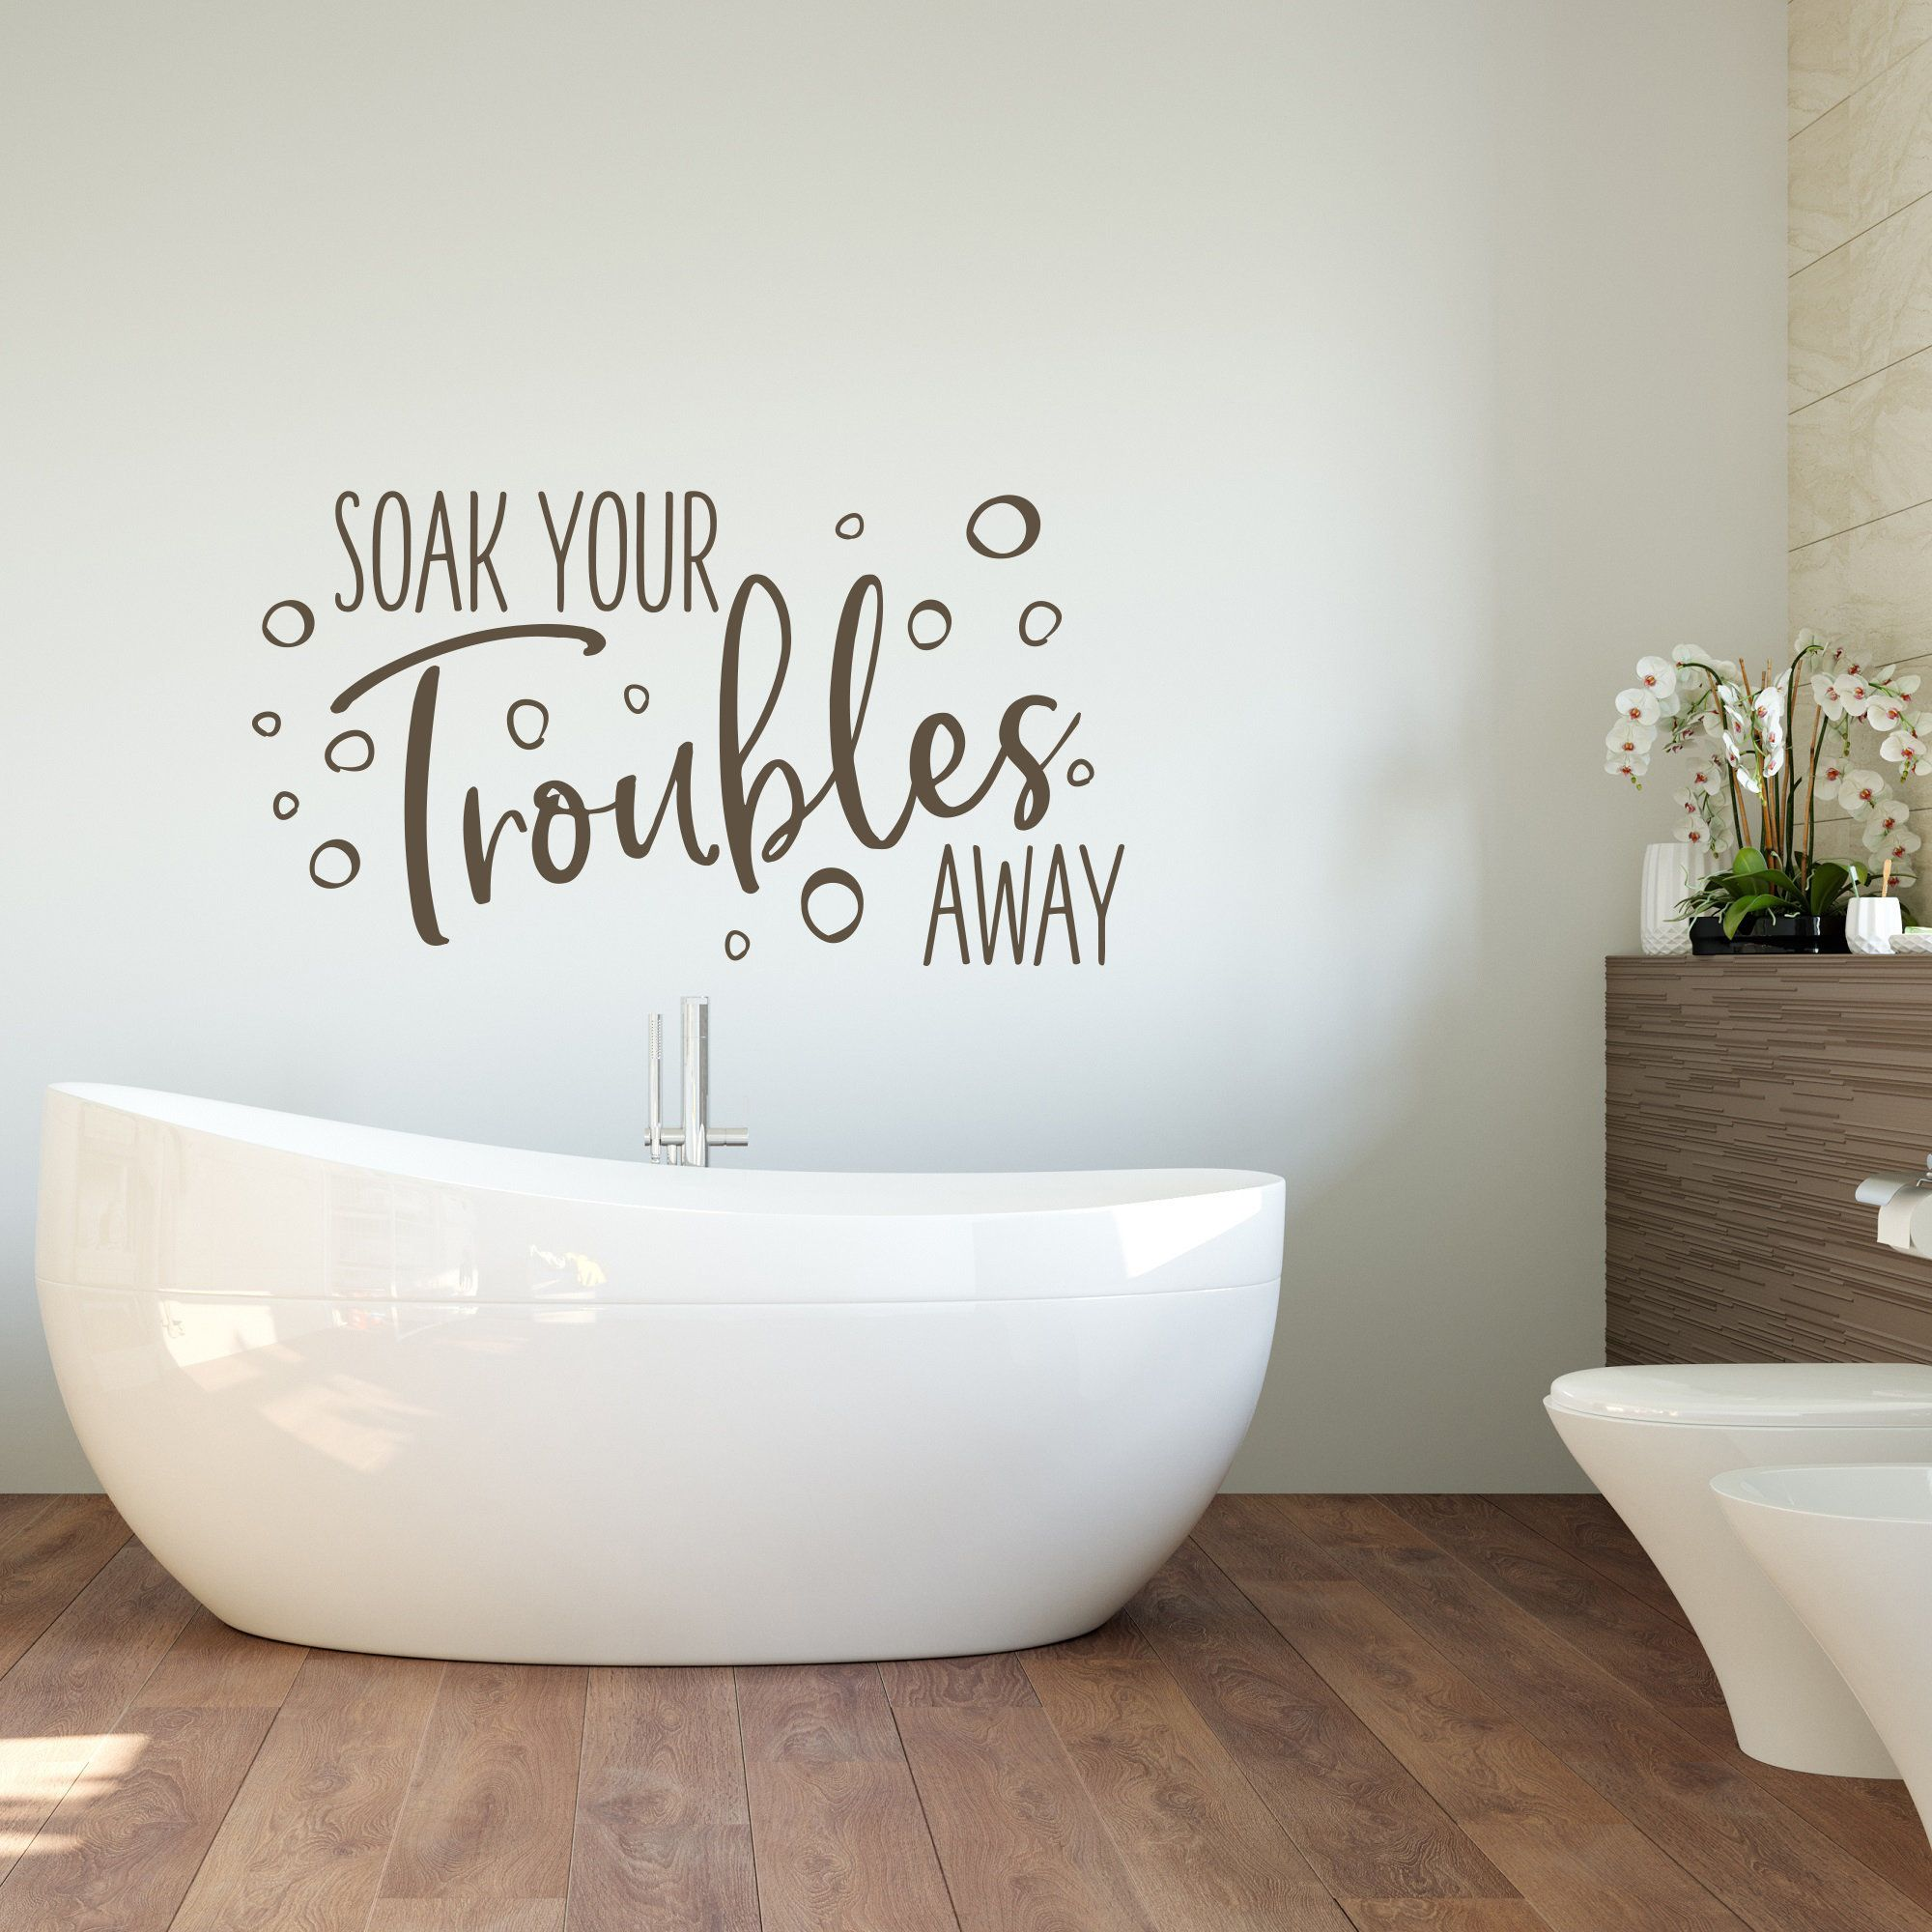 Bathroom Wall Decal Soak Your Troubles Away Home Wall Decor